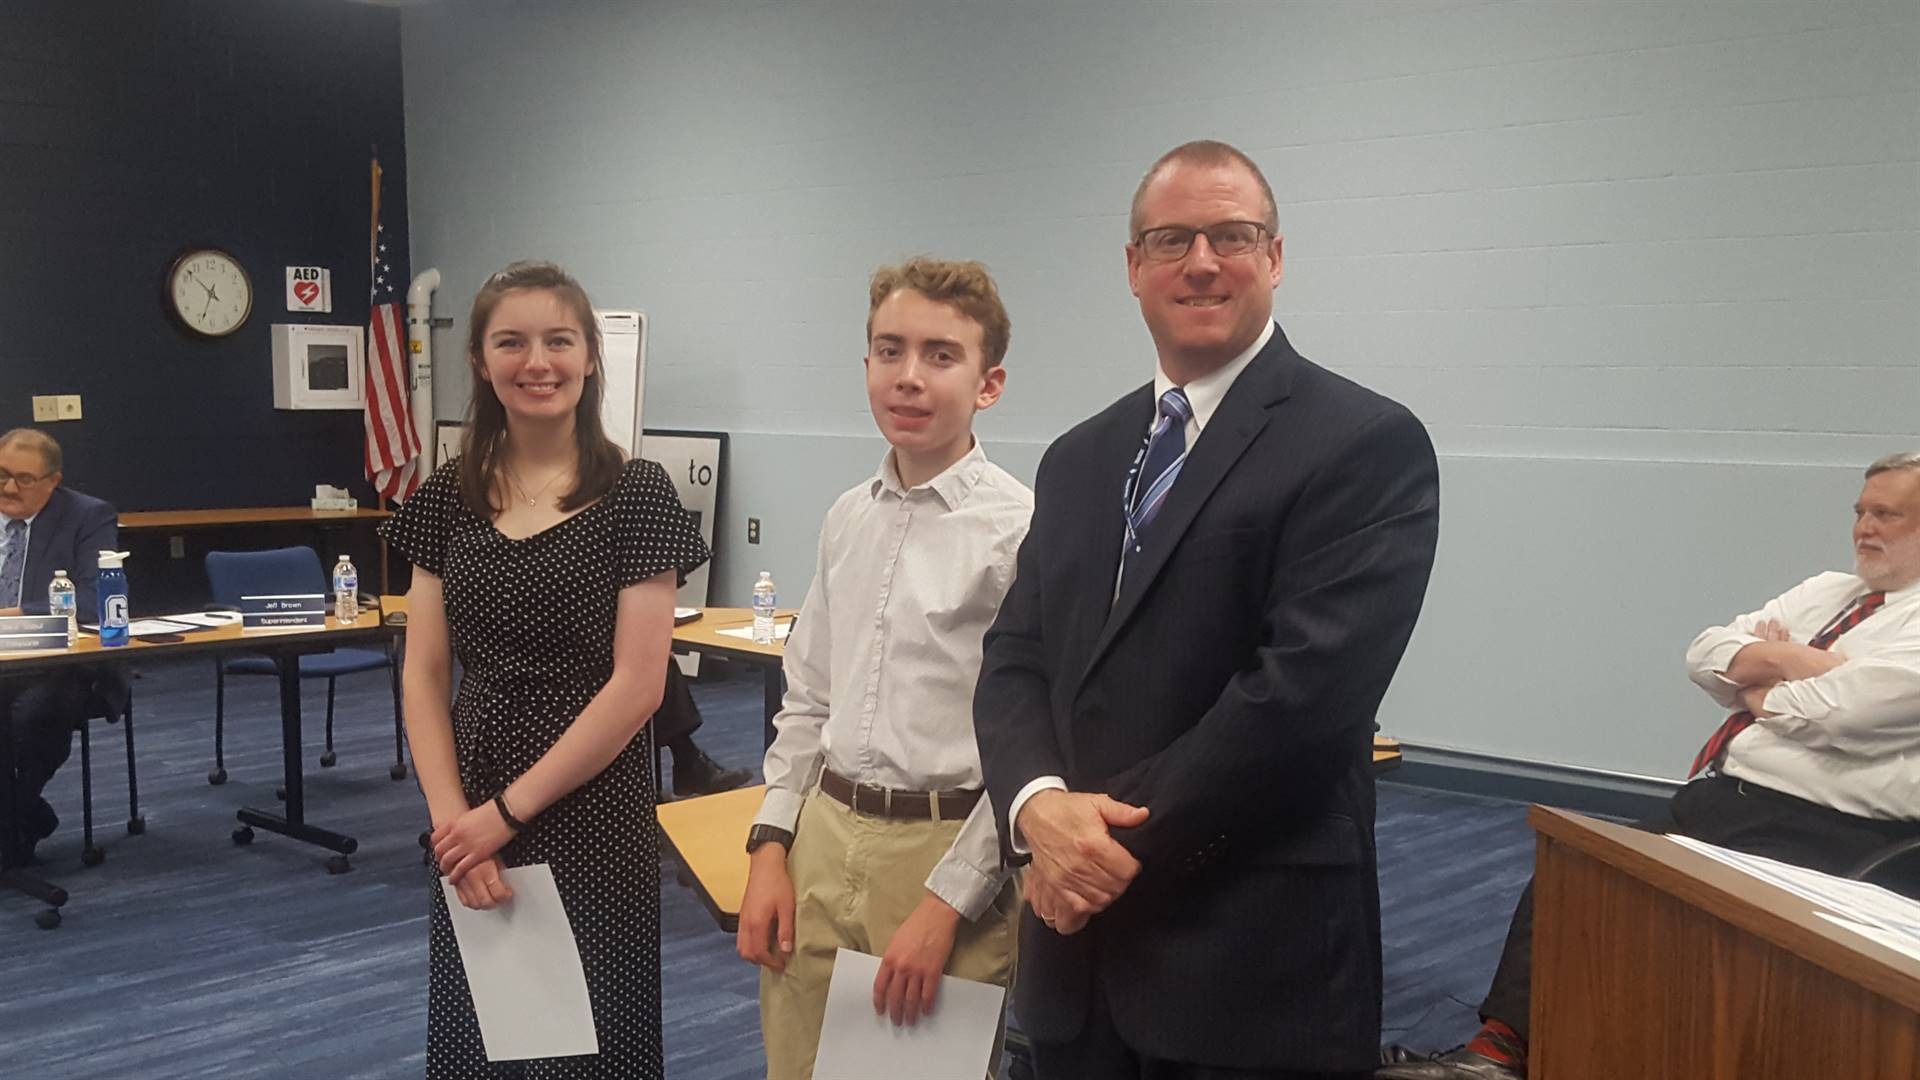 Orchestra Commendations May 20 2019